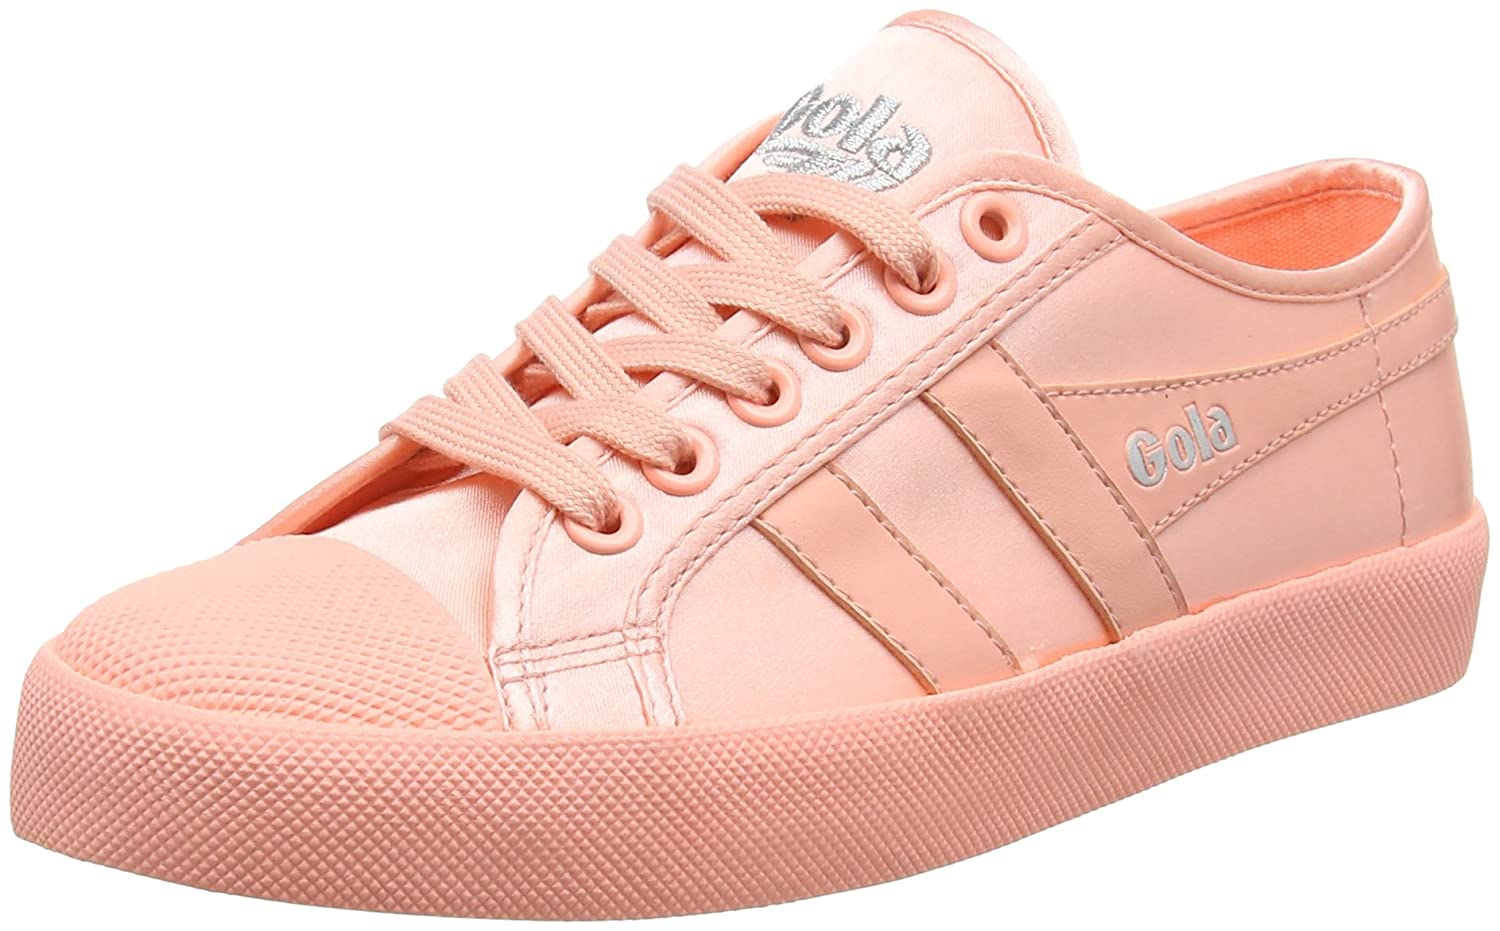 Gola 19985 Coaster Satin Neon Coral, Baskets Femme Rose (Neon Femme Neon Coral Blue) d943206 - fast-weightloss-diet.space